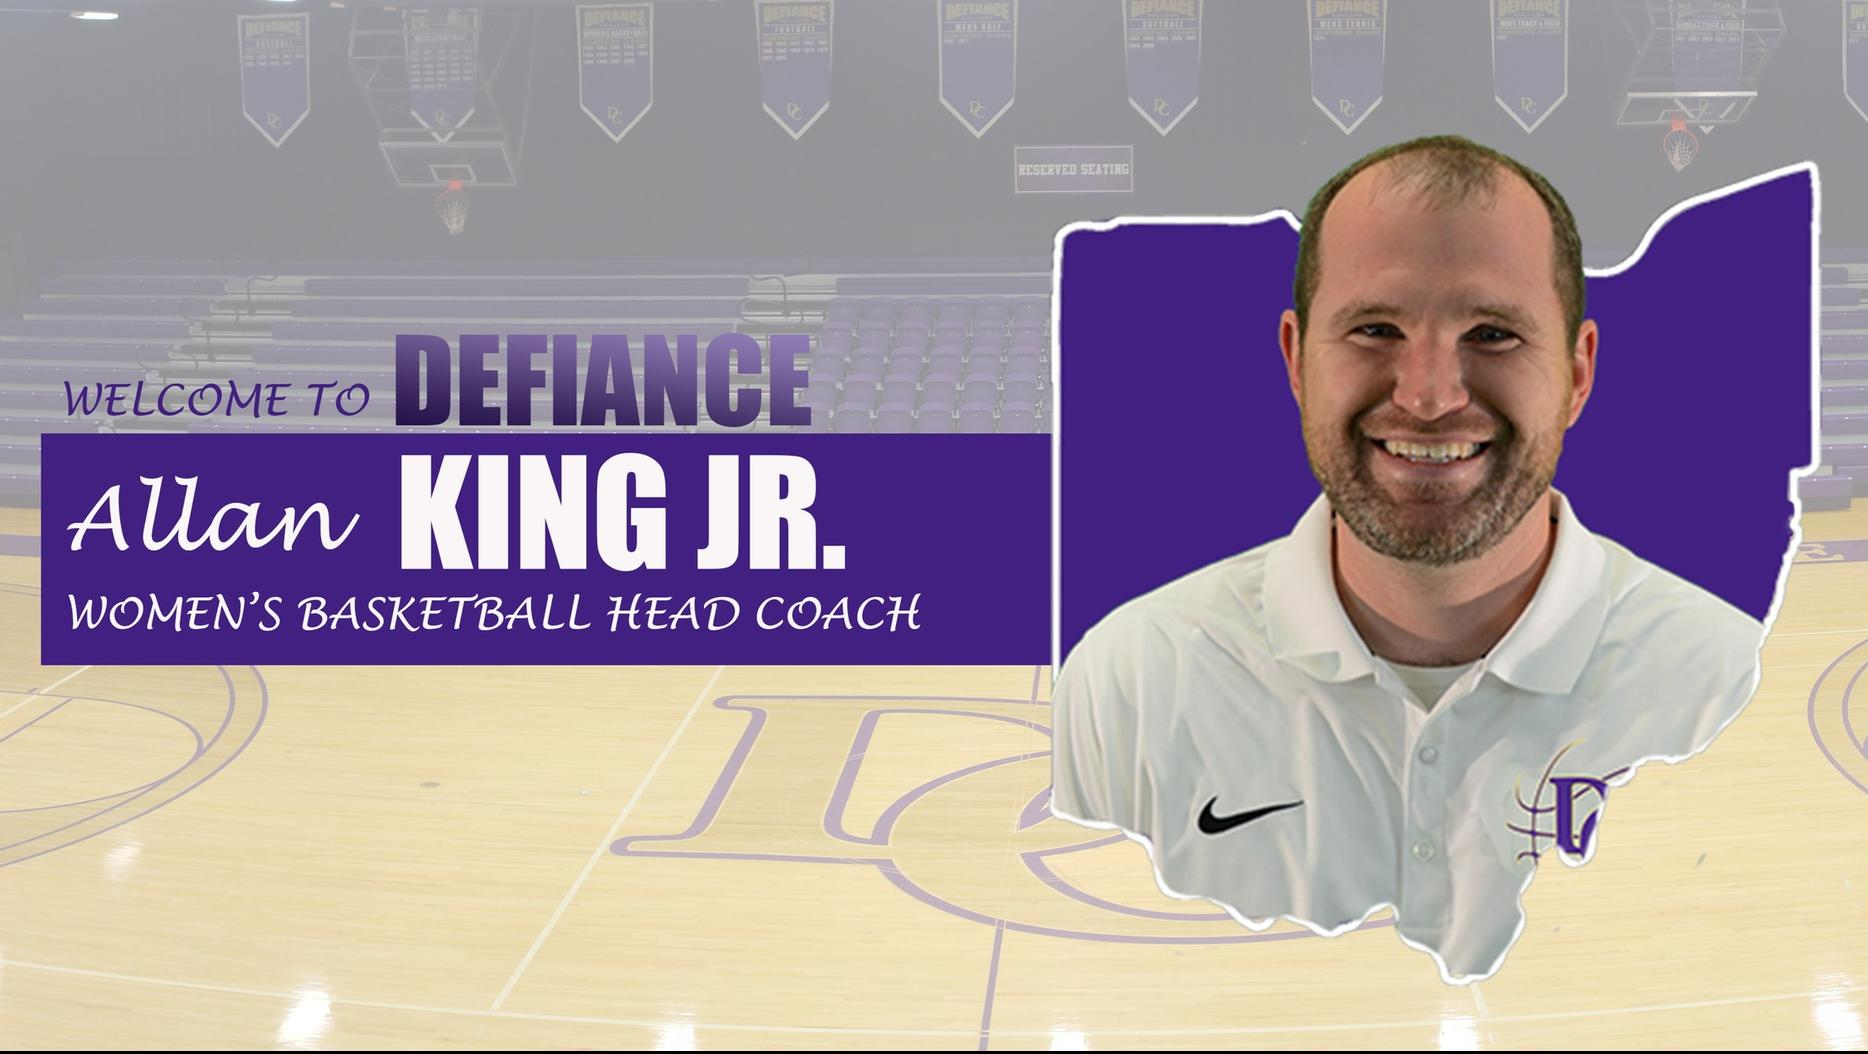 Defiance Selects Allan King, Jr. as Head Women's Basketball Coach